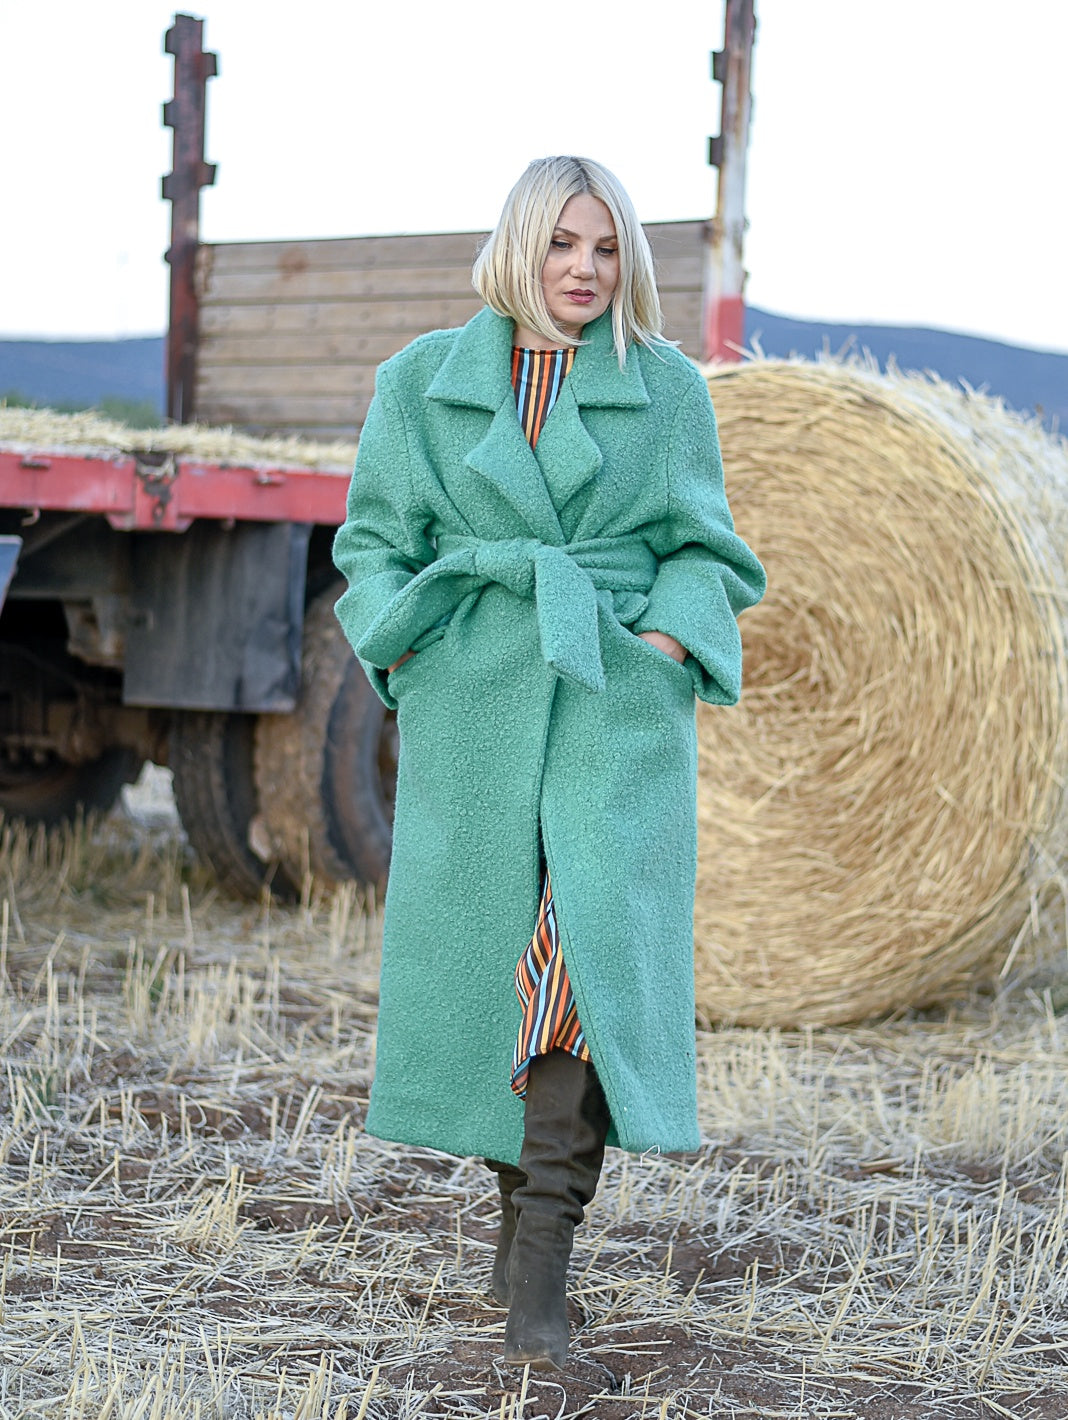 Asper Green Coat Damodastories Collection